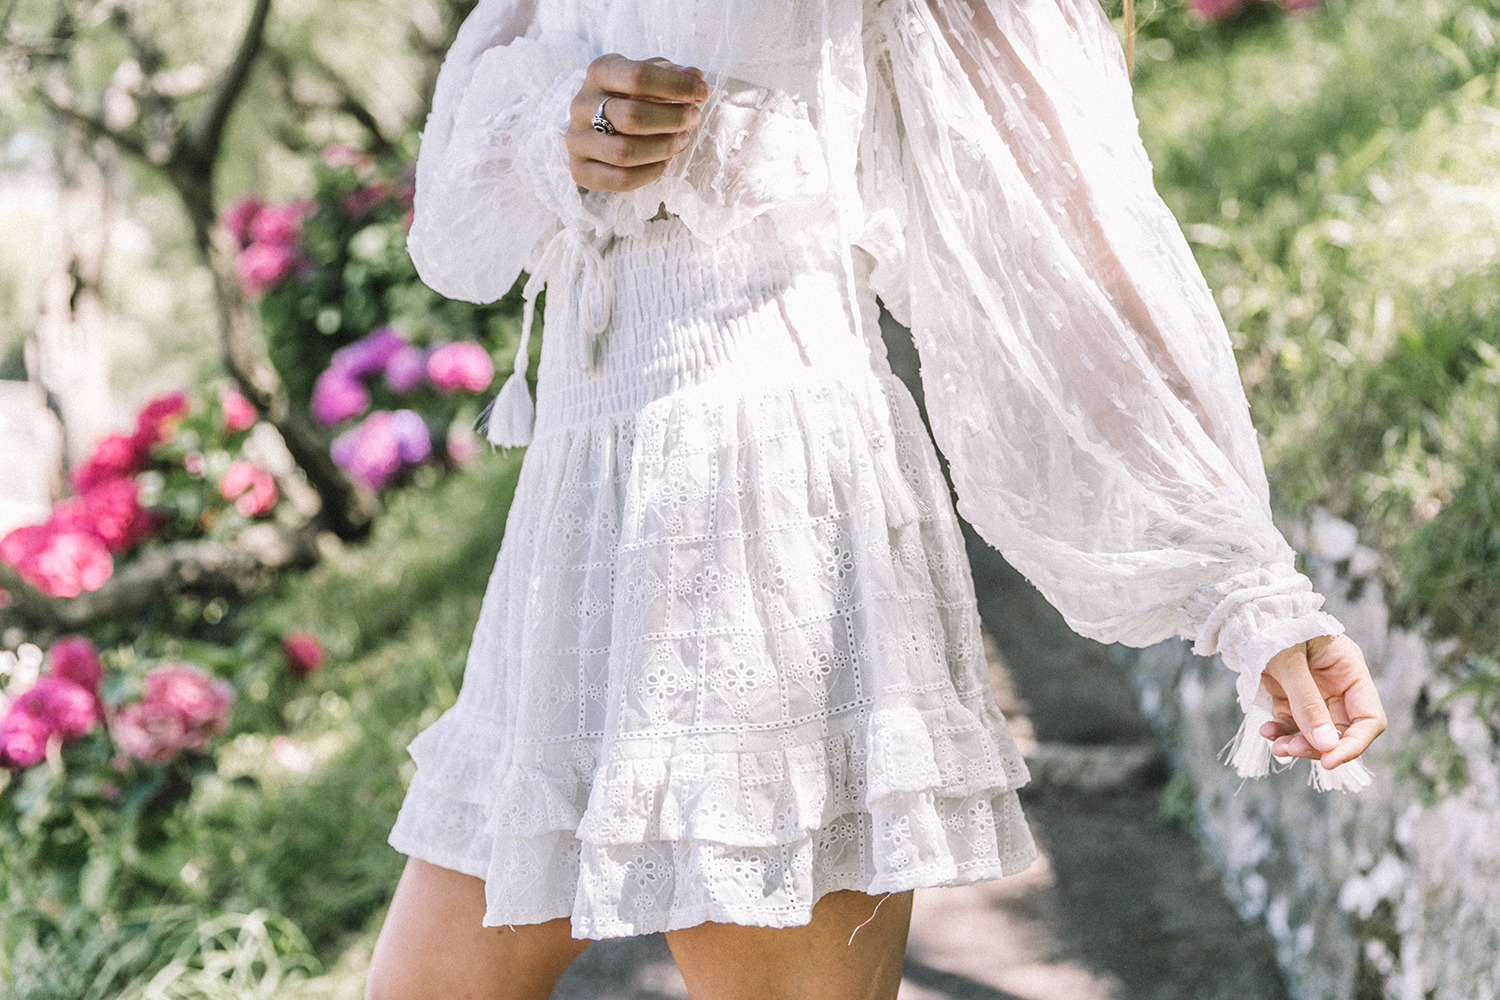 White_Outfit-Denim_Jacket-Lack_Of_Color_Hat-Outfit-Biarritz-Levis-Live_In_Levis-Street_Style-Summer-Boho_Skirt-Collage_Vintage-14